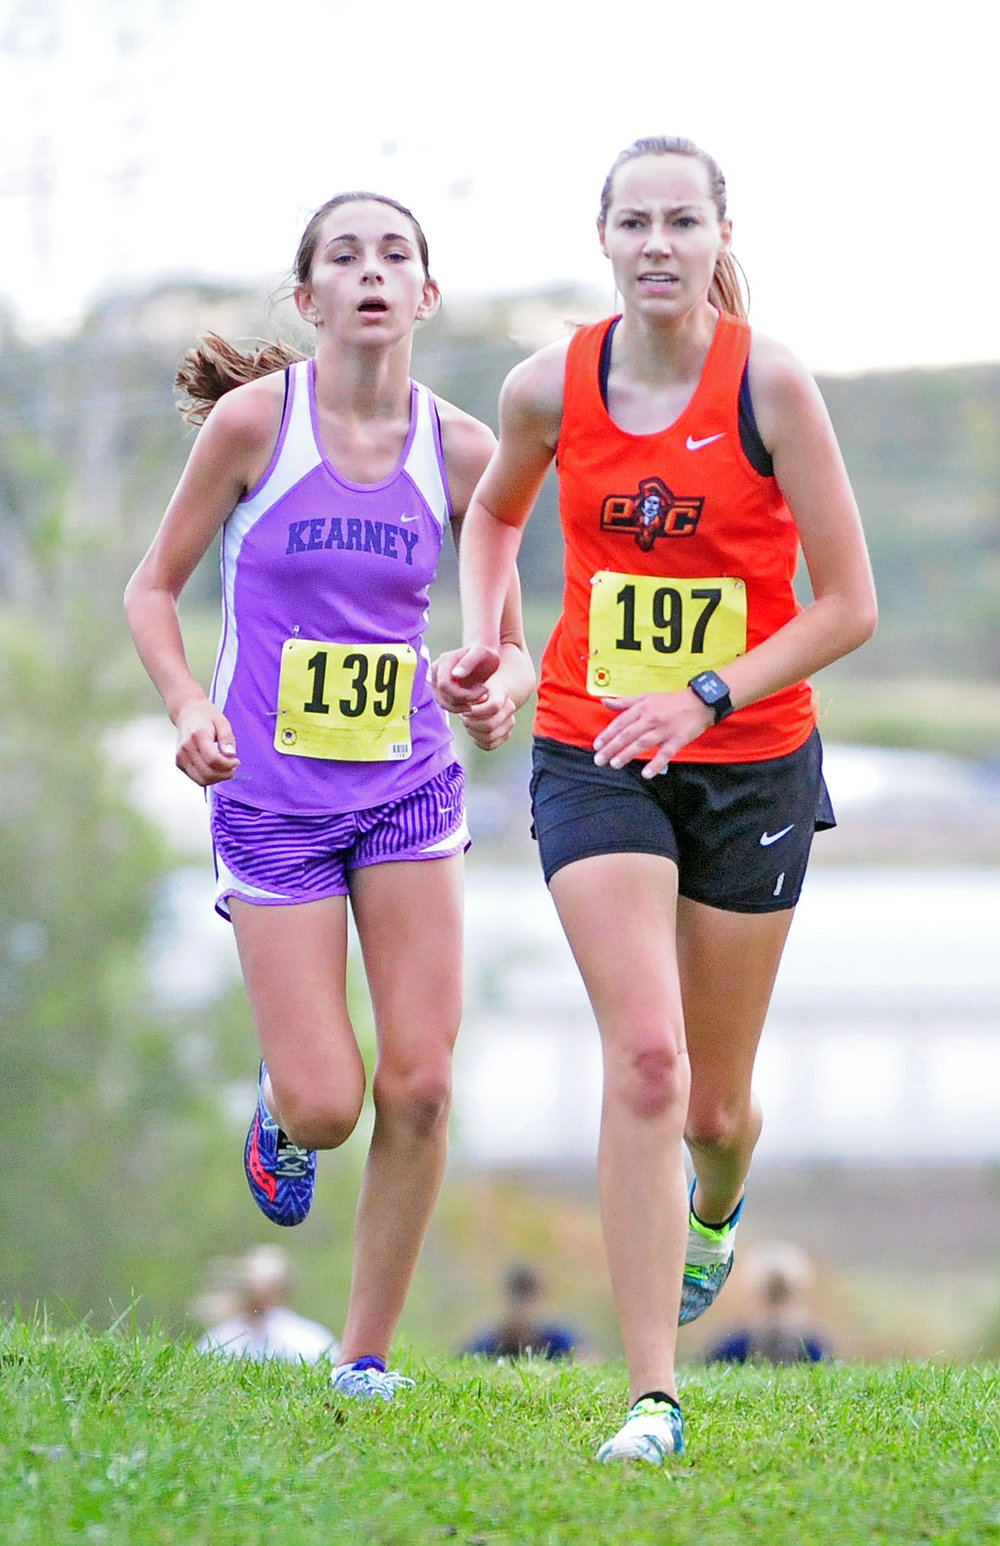 NICK INGRAM/Citizen photo Platte County senior Lauren Johnson (197) battles with a Kearney runner near the finish line of the Suburban Conference Blue Division Championships on Saturday, Oct. 7 at Jesse James Fairgrounds in Kearney, Mo.